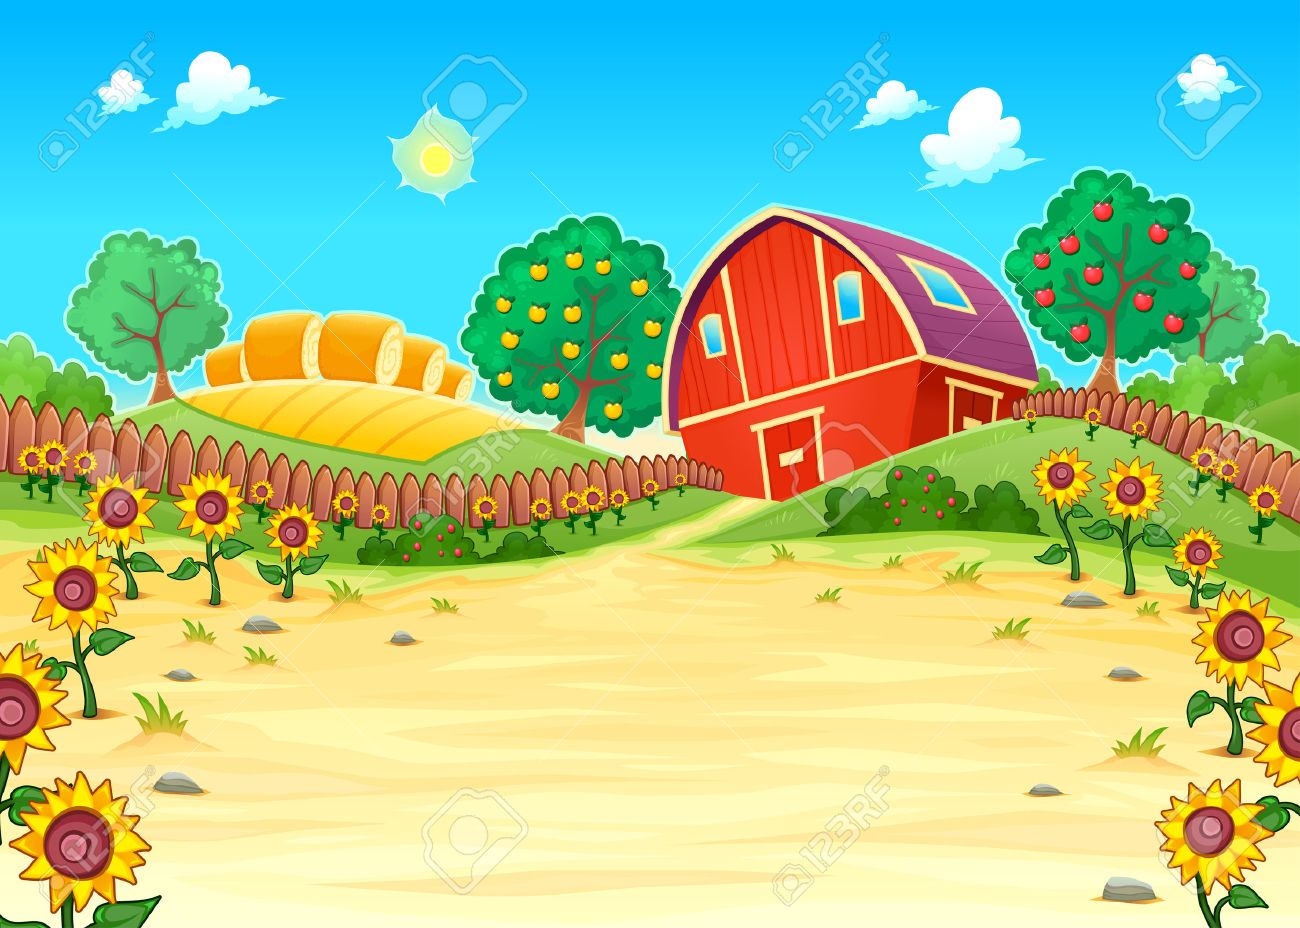 Funny landscape with the farm and sunflowers. Cartoon vector illustration - 52578147